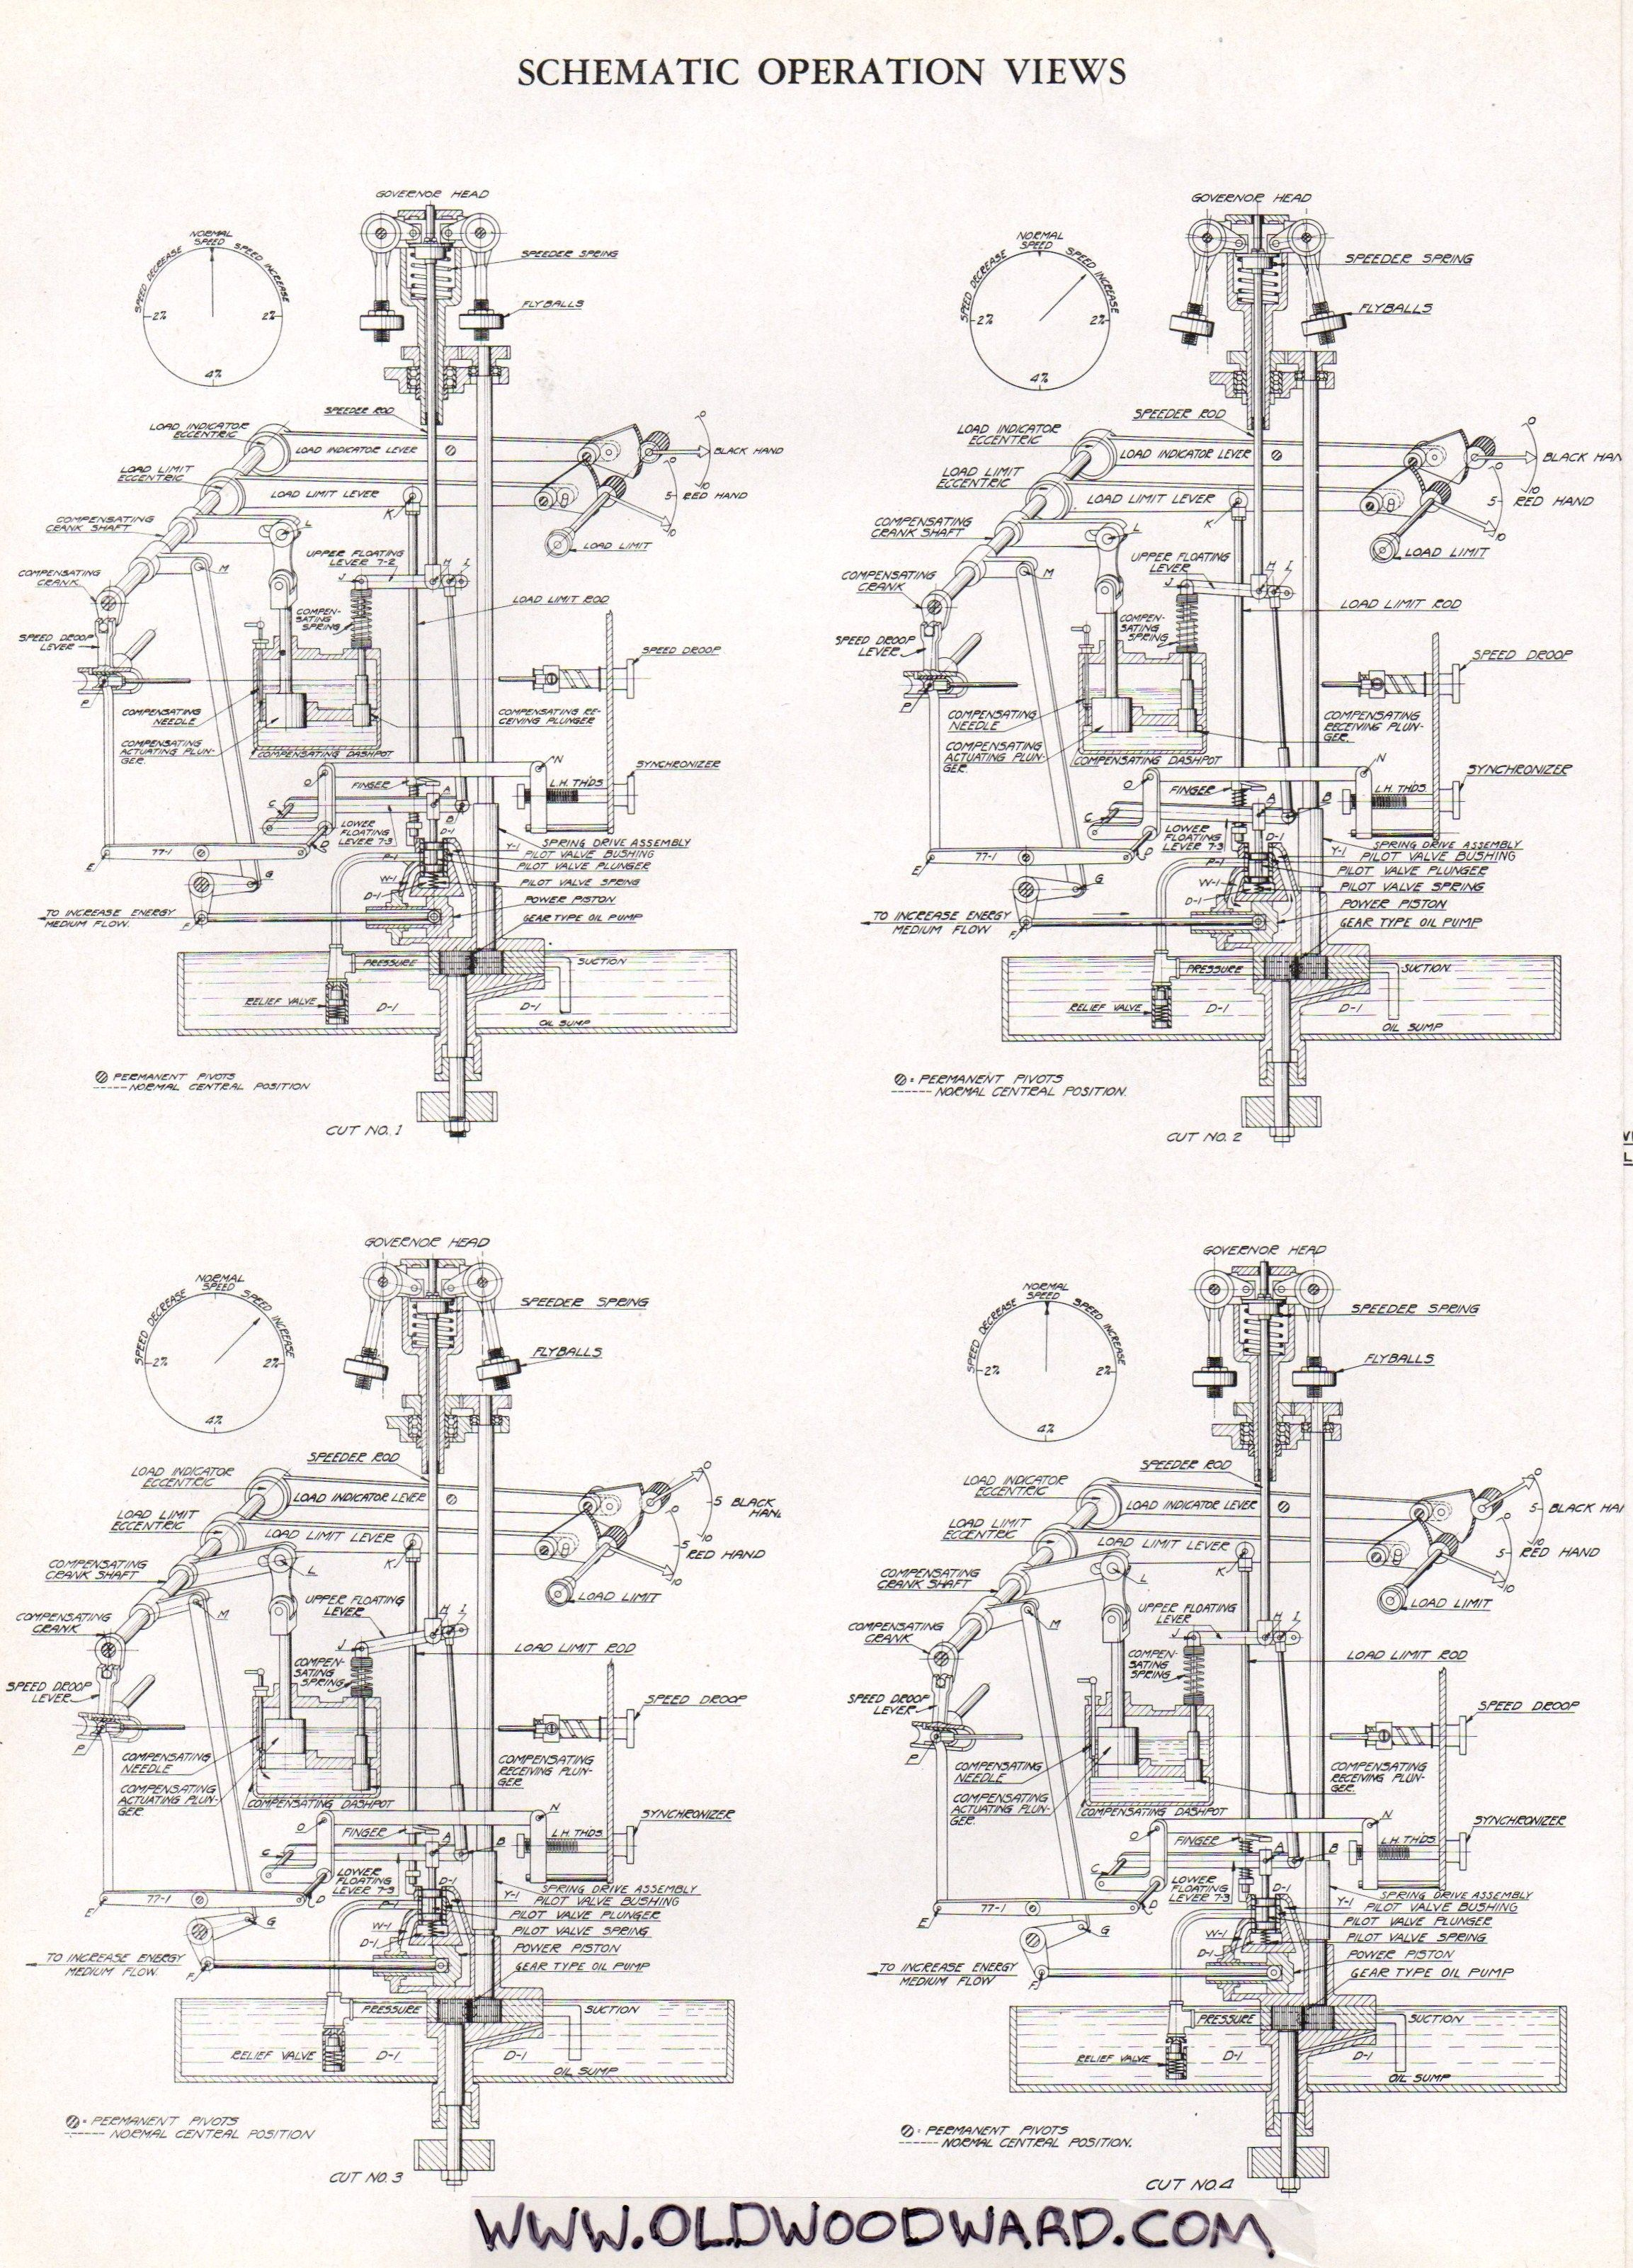 medium resolution of from bulletin w 2 schematic drawing of the woodward governor company s type ic diesel engine governor patent no 2 039 507 the first customer units went to